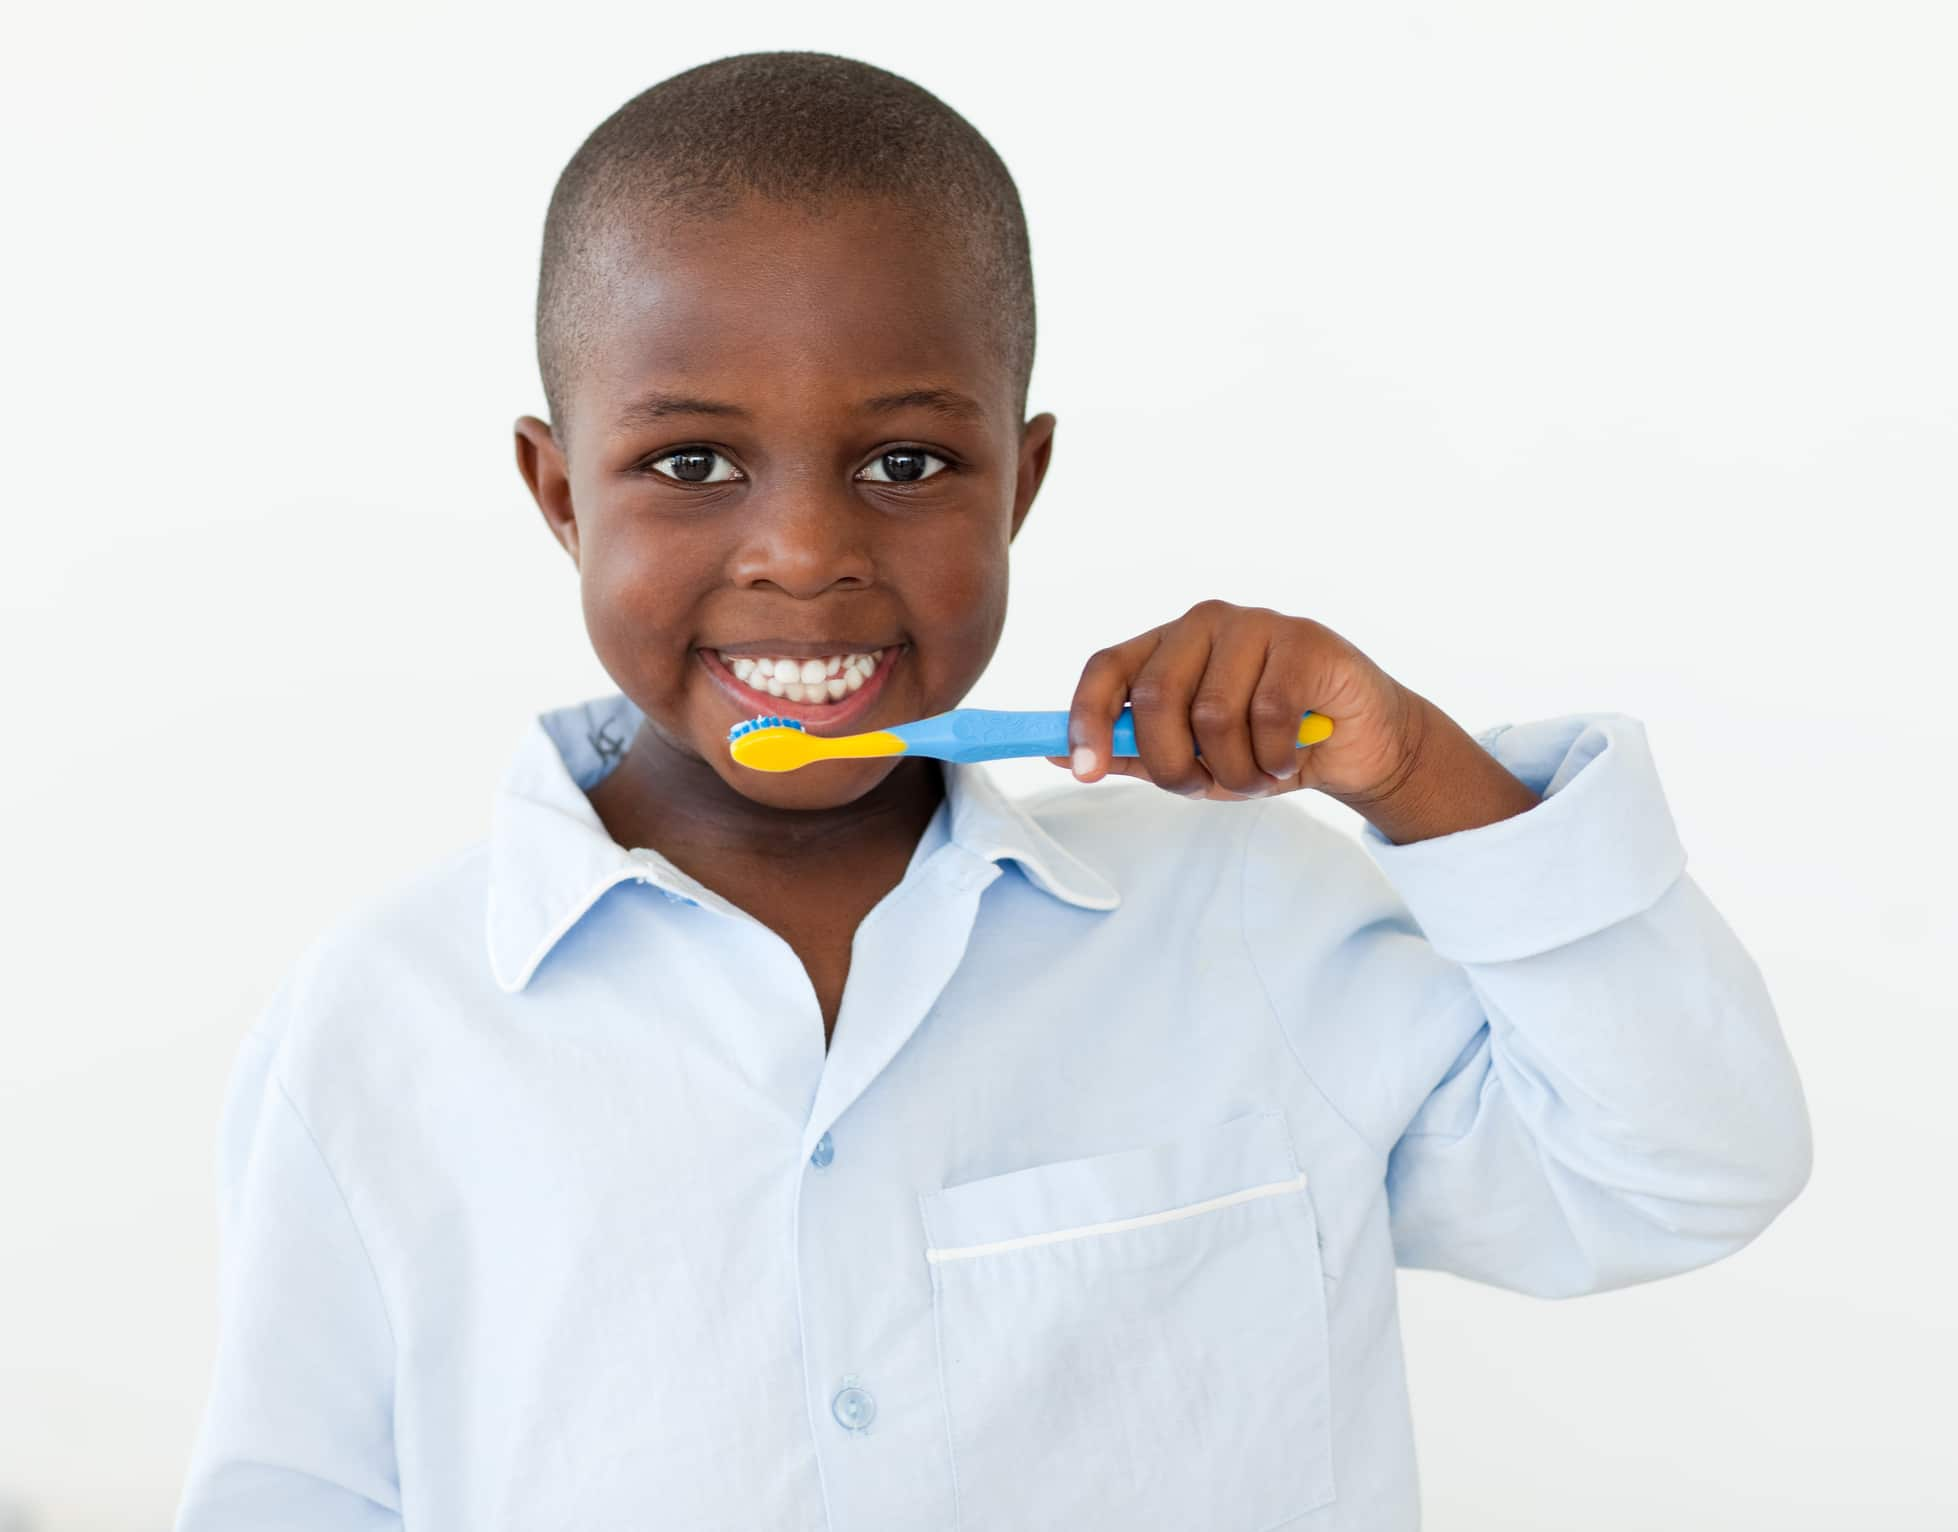 Dental Hygiene for children, Smile Envy Dental Group, Atlanta, GA